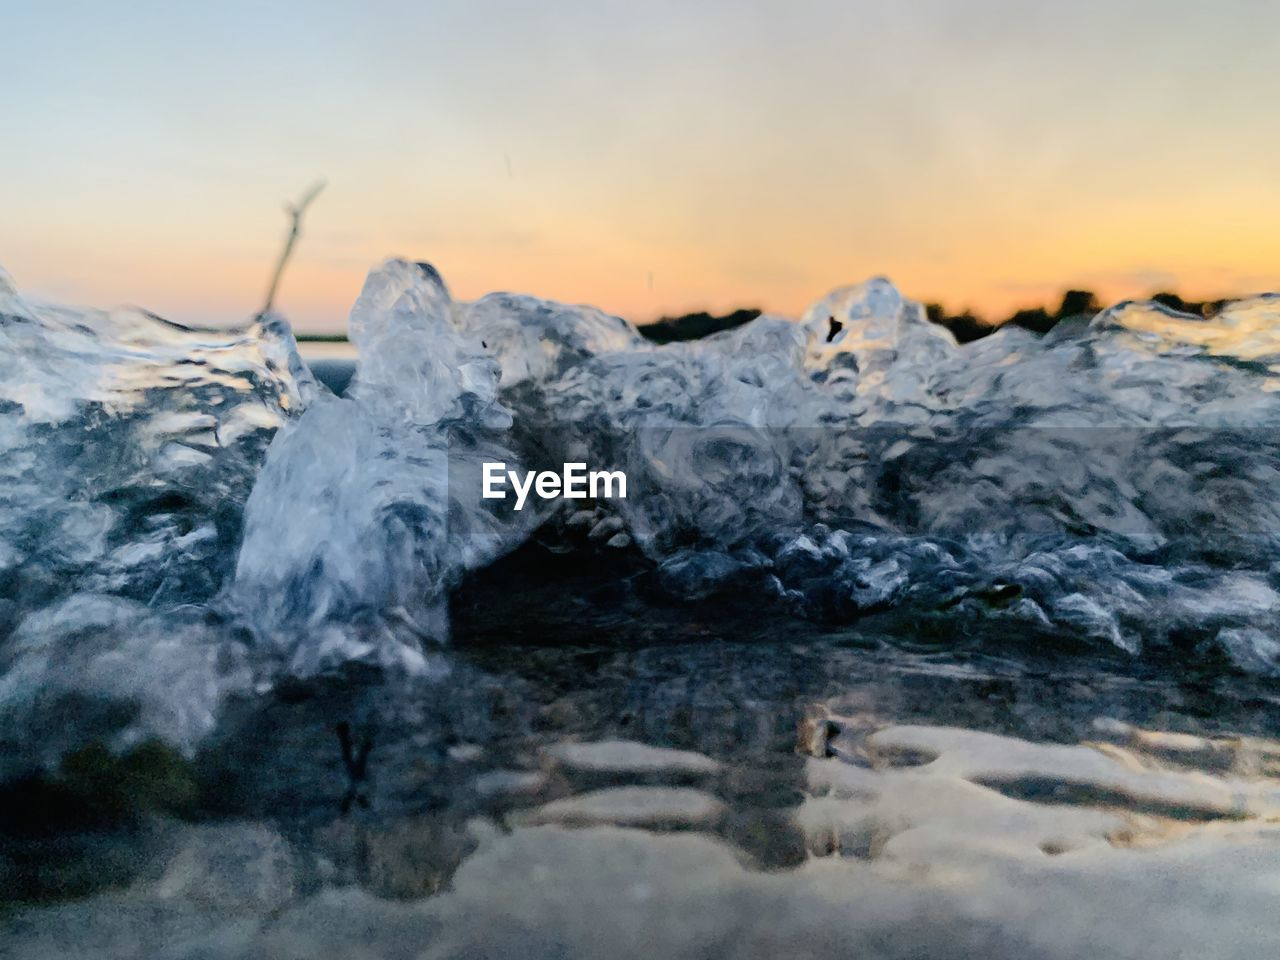 water, sunset, sky, beauty in nature, motion, nature, scenics - nature, no people, environment, land, sea, cold temperature, winter, tranquility, splashing, non-urban scene, power in nature, landscape, idyllic, ice, flowing water